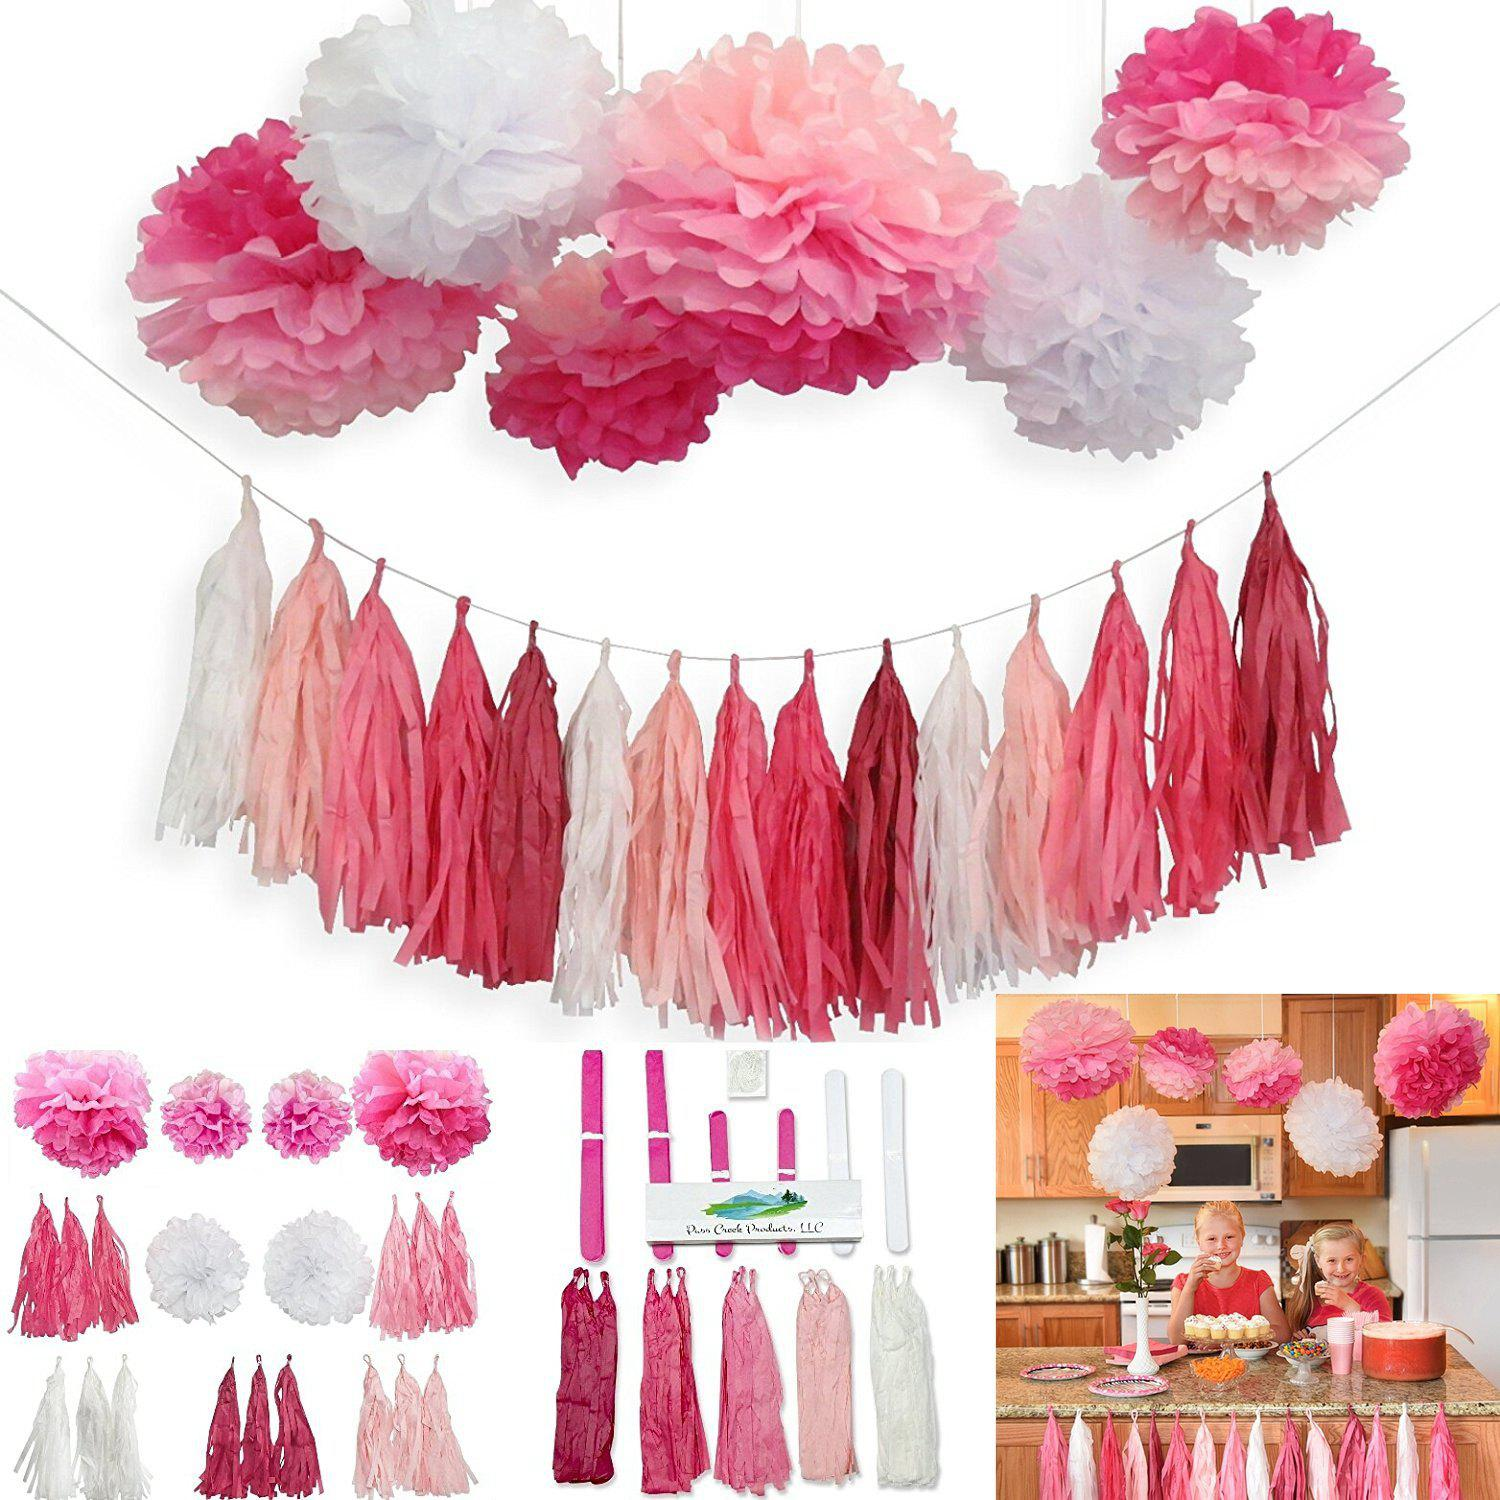 L'ESPOIR DE L'EST 21Pcs Guirlande Guirlande et Pom Partie Décoration Set pour Baby Shower Wedding Party Home Decor (Couleur: Rose Ombre et Blanc) - ROSE PÂLE 21PCS